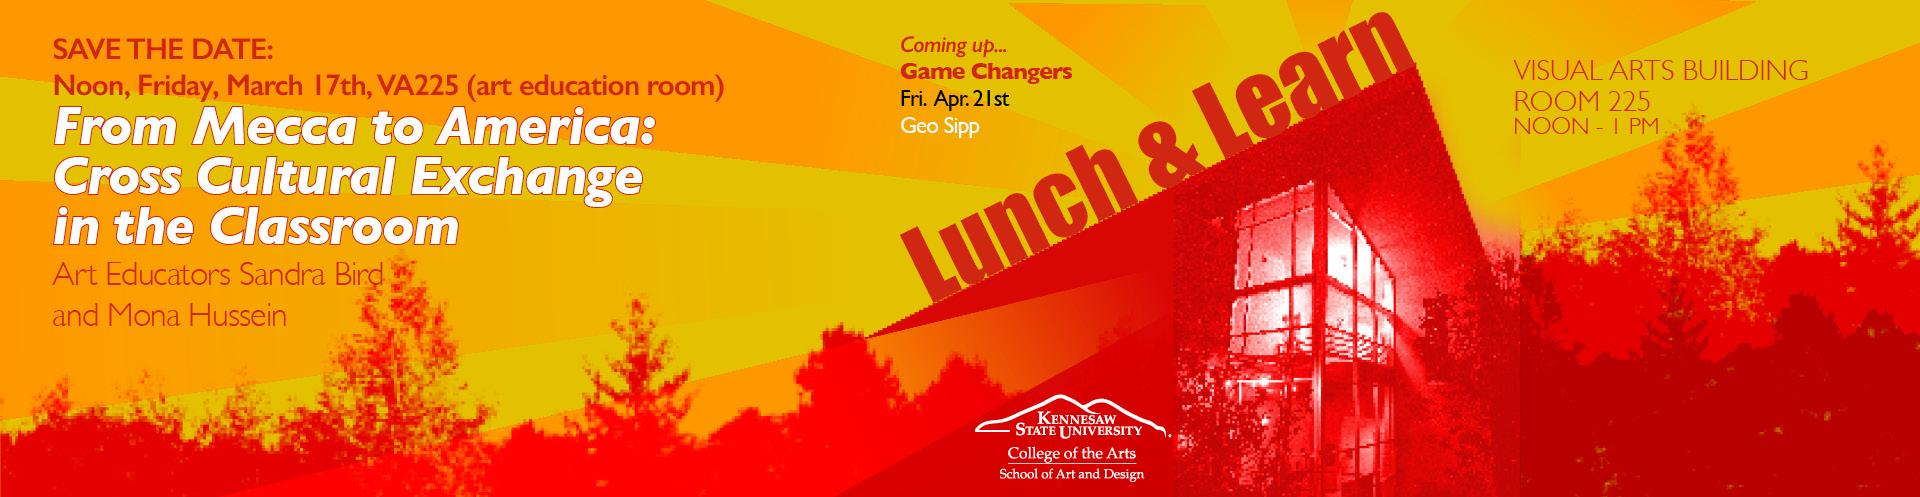 Lunch & Learn March 17, 12 - 1 p.m.